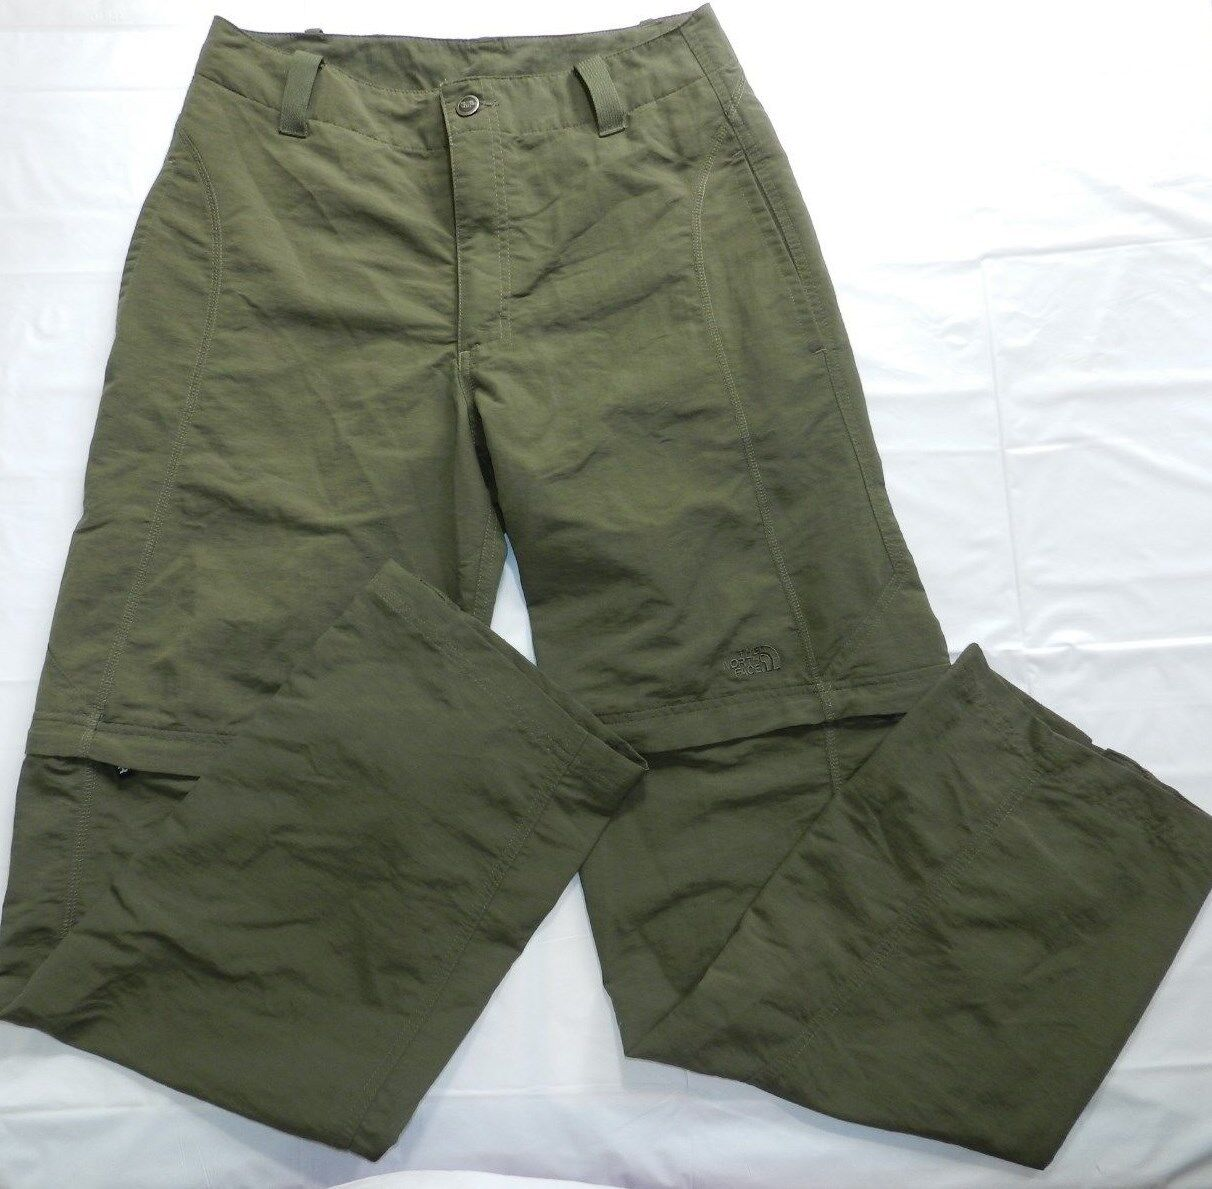 MENS green congreenible hiking PANTS = THE NORTH FACE = SIZE 30 = ss13